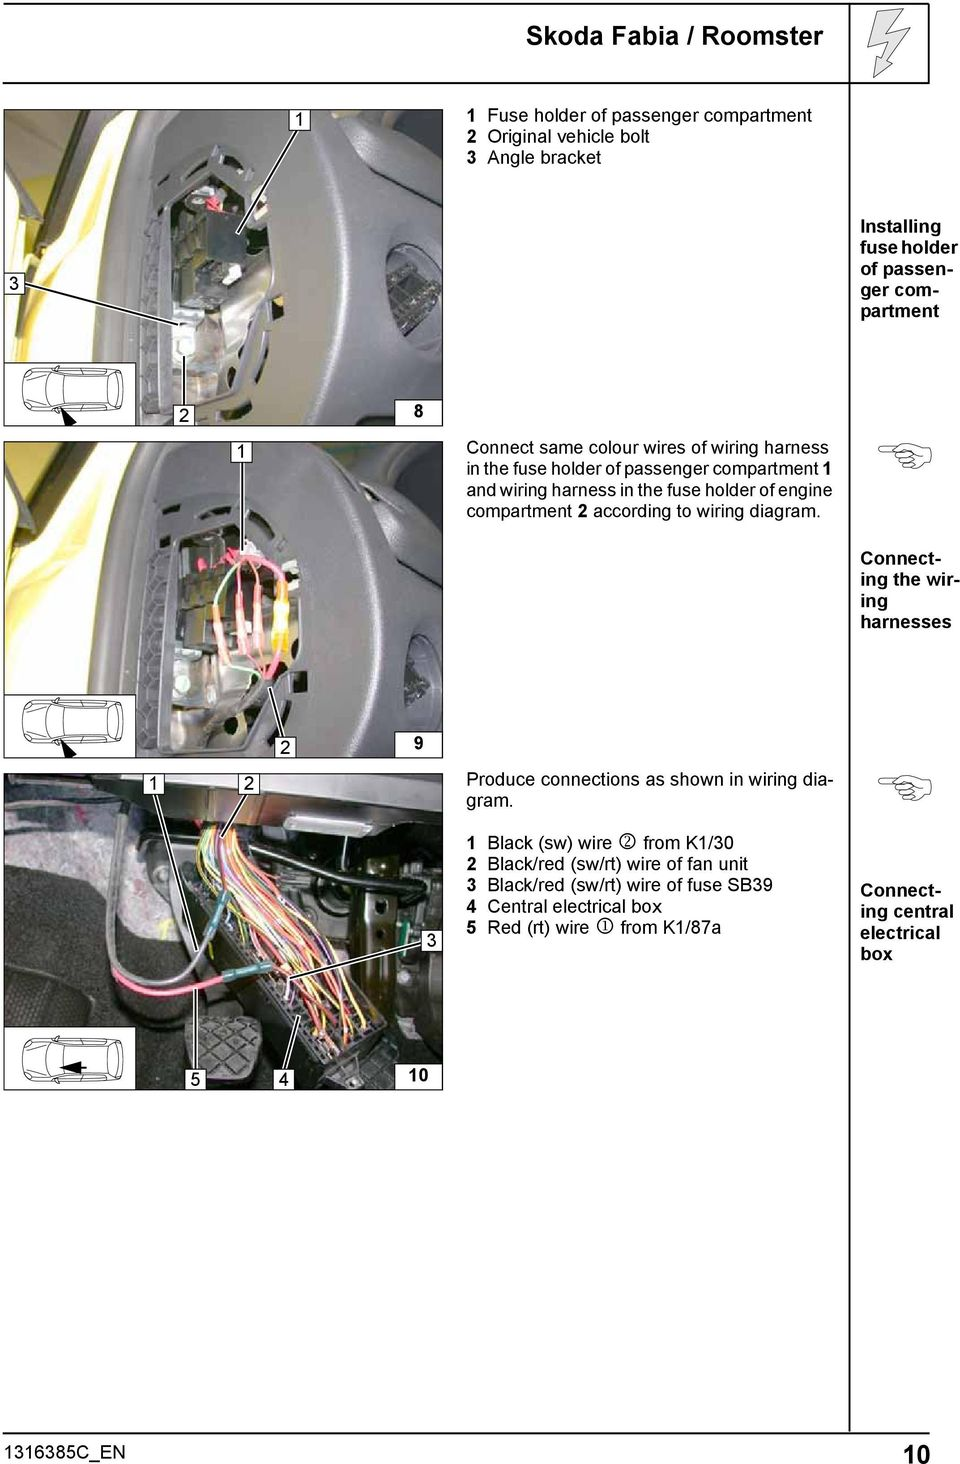 Always Follow All Webasto Installation And Repair Instructions 2003 Vw Beetle Fuse Block Wiring Harness Holder Of Passenger Compartment Connecting The Harnesses 9 Black Sw Wire From